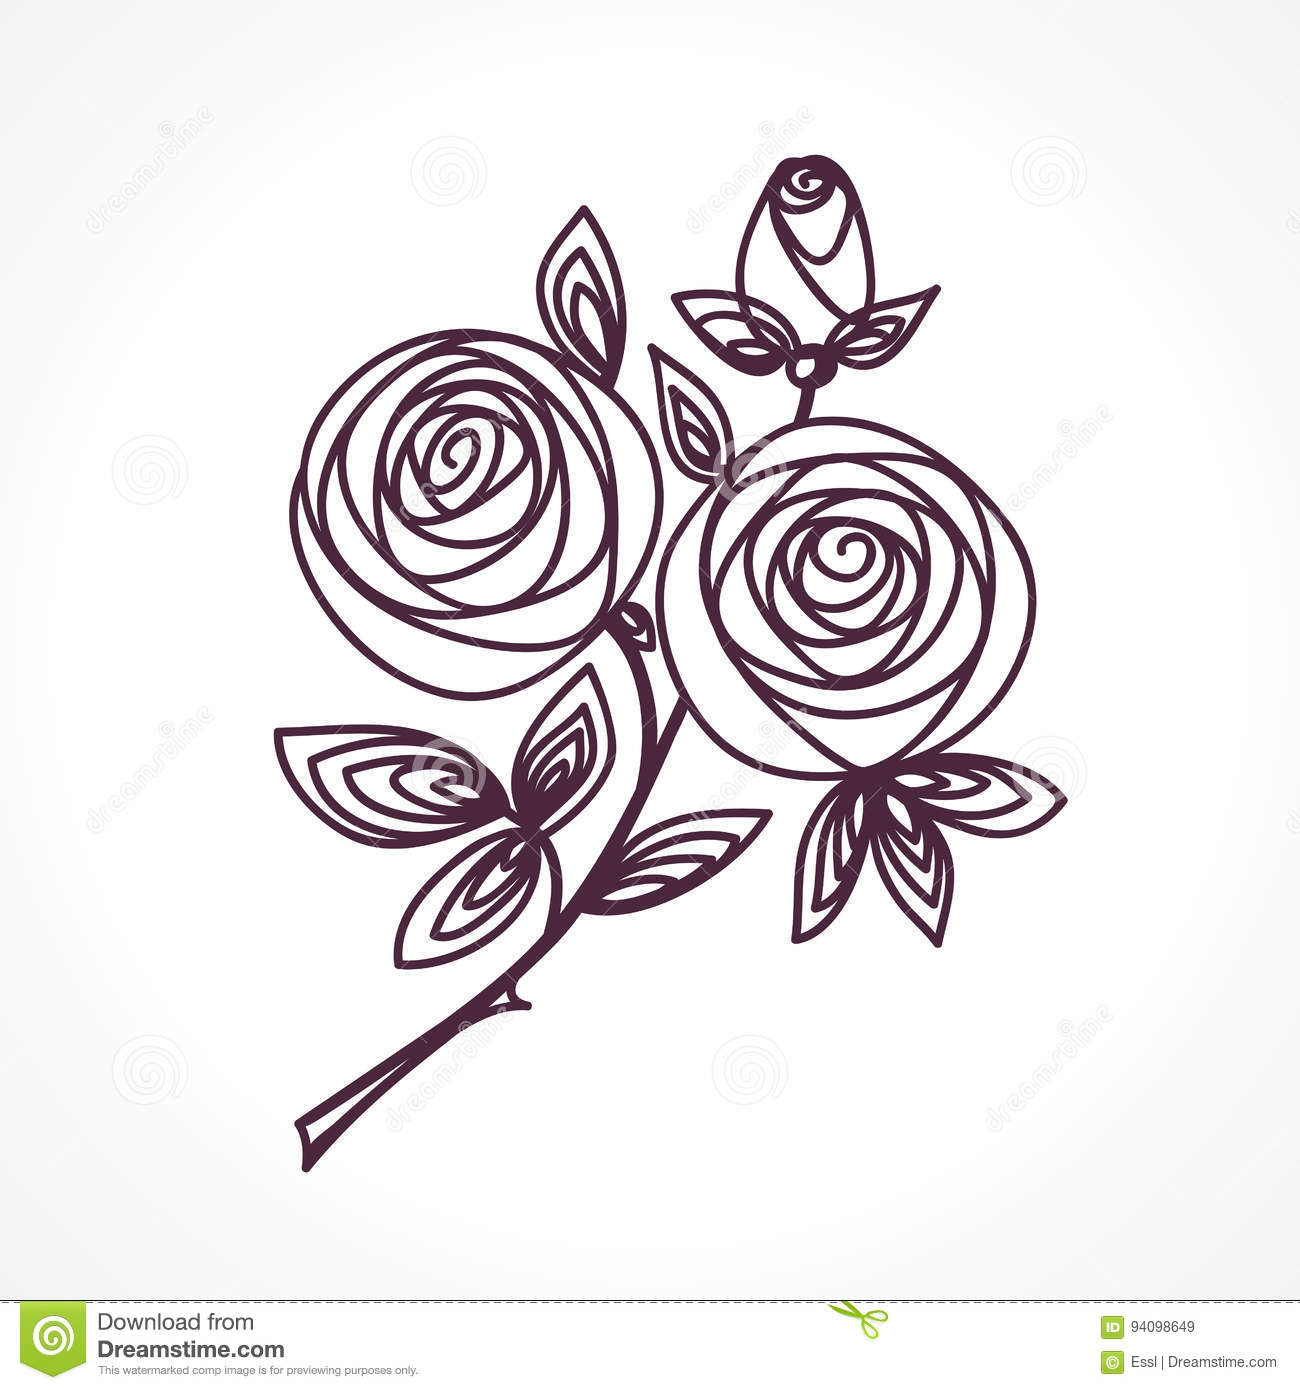 Roses stylized flower bouquet hand drawing outline icon symbol stylized flower bouquet hand drawing outline icon symbol present for wedding birthday invitation card izmirmasajfo